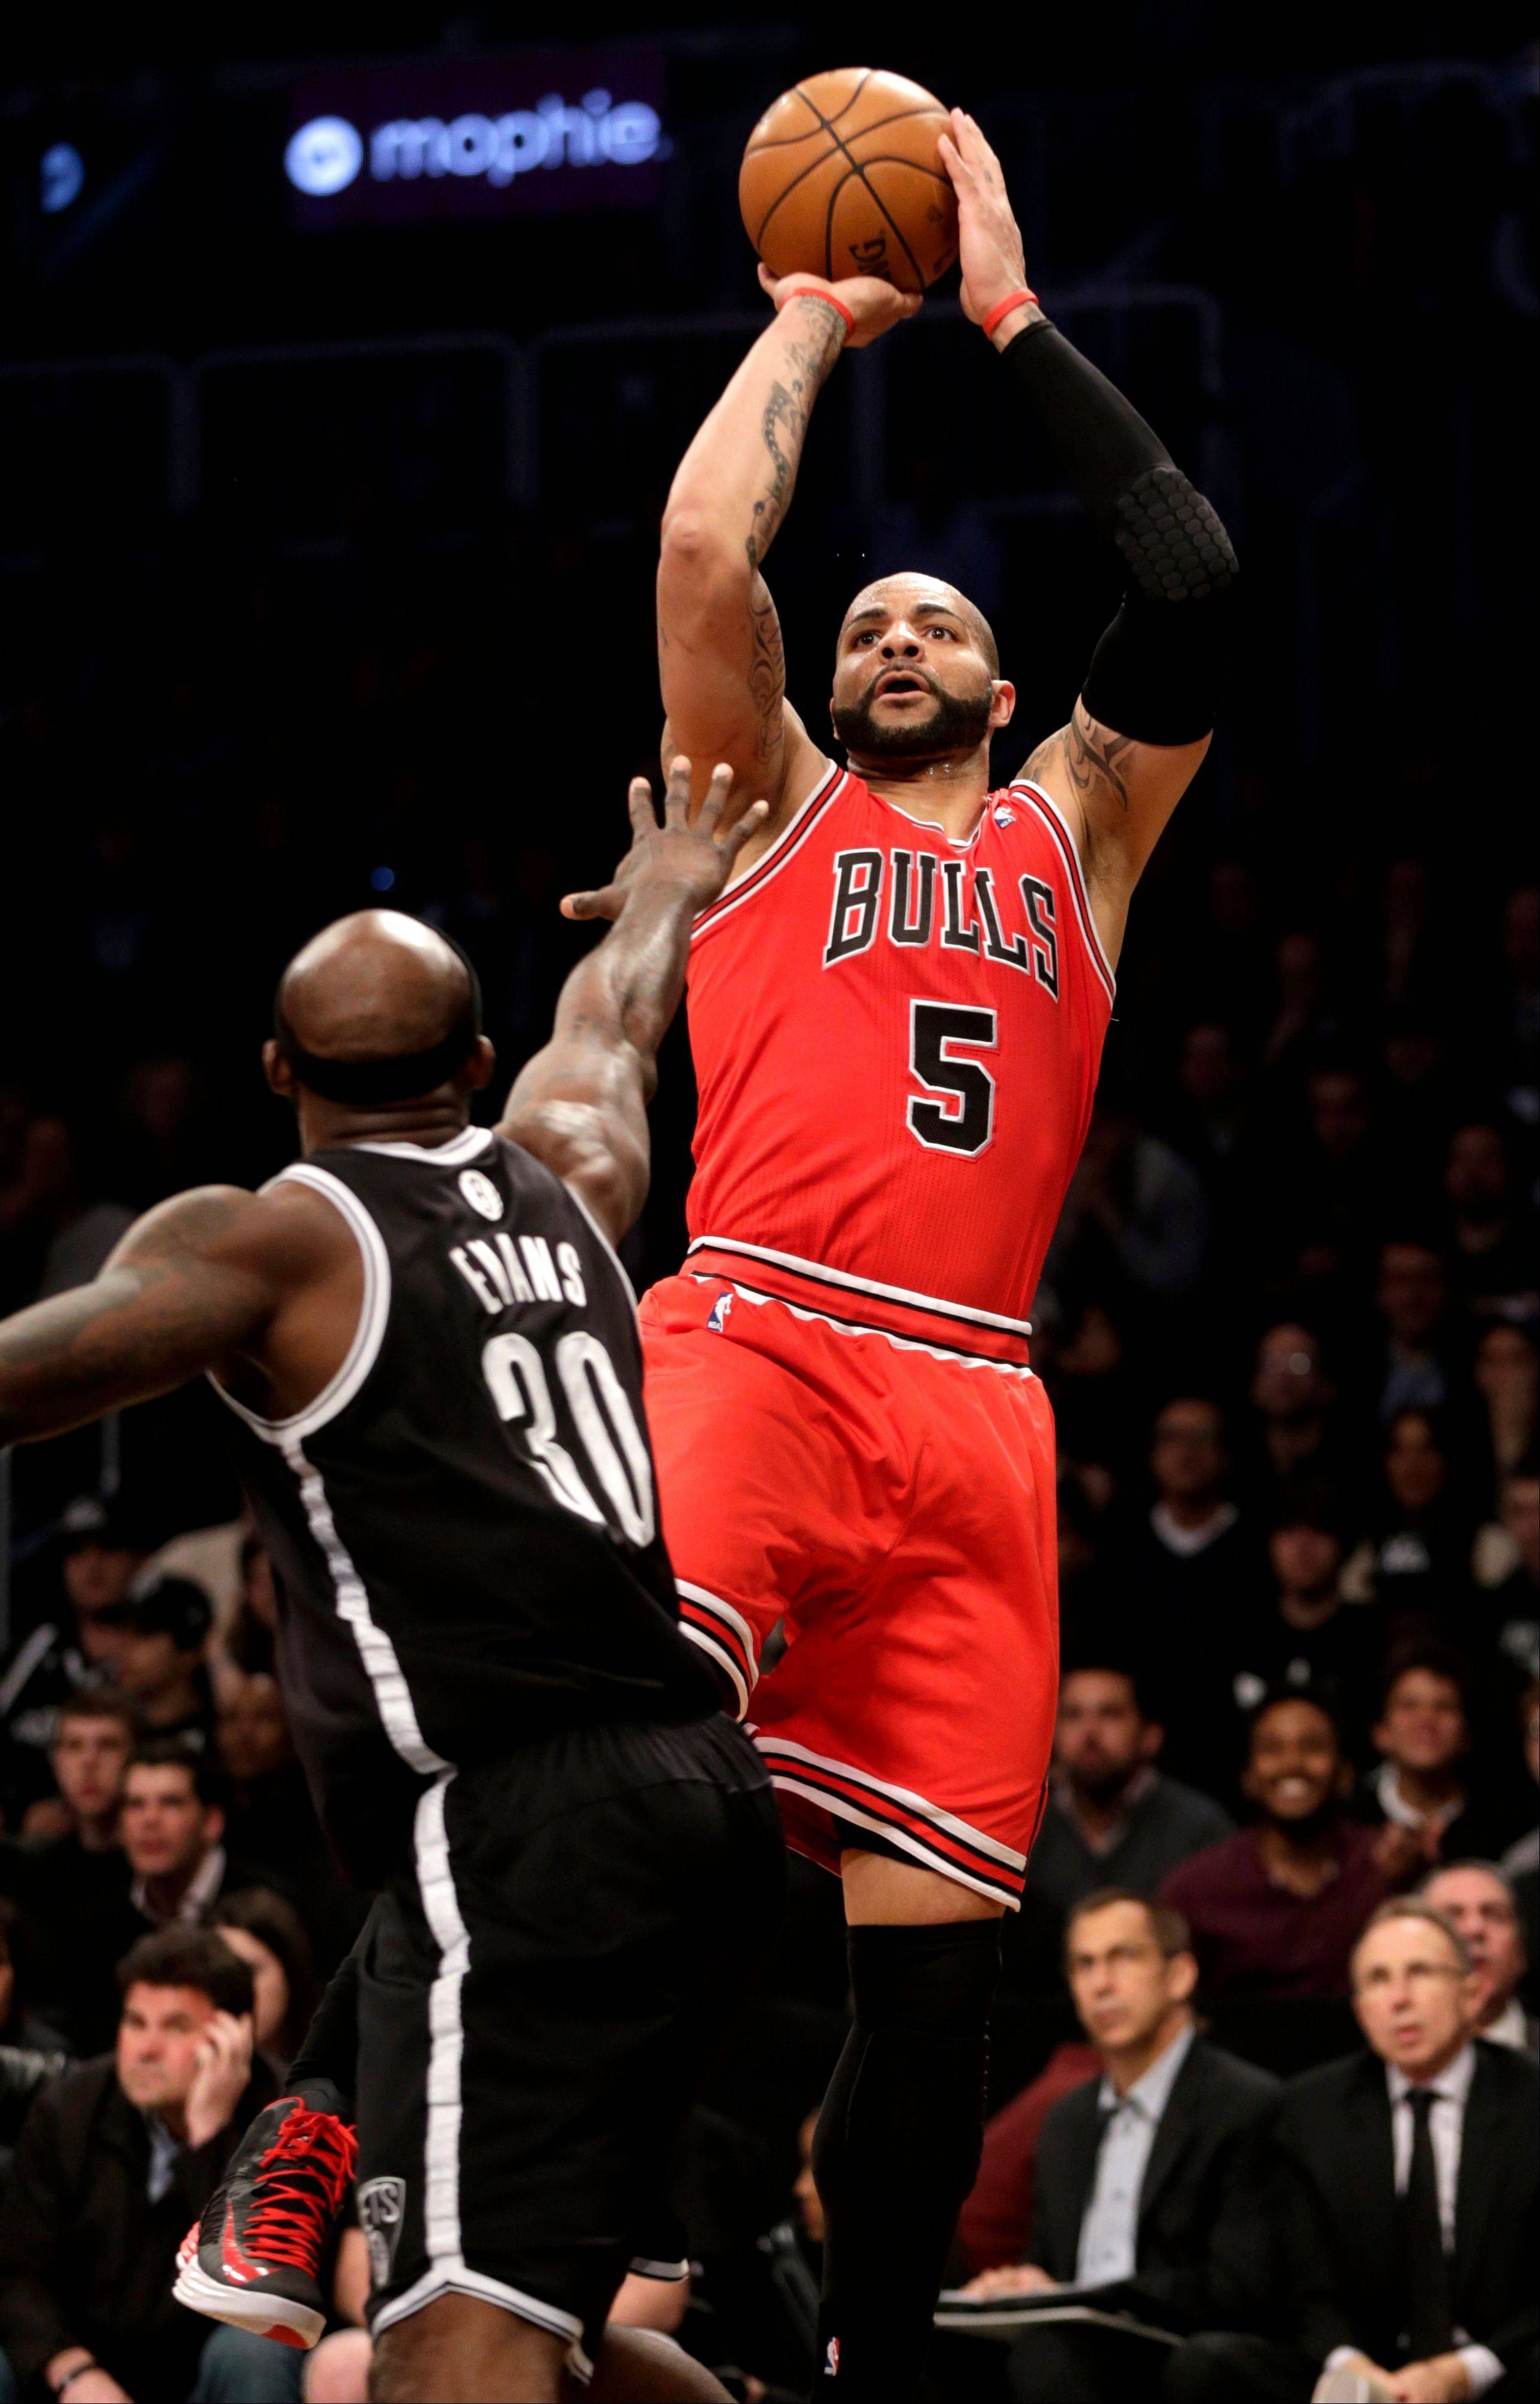 Carlos Boozer, here shooting over the Nets' Reggie Evans in Game 1, look to even the series Monday night in Brooklyn.